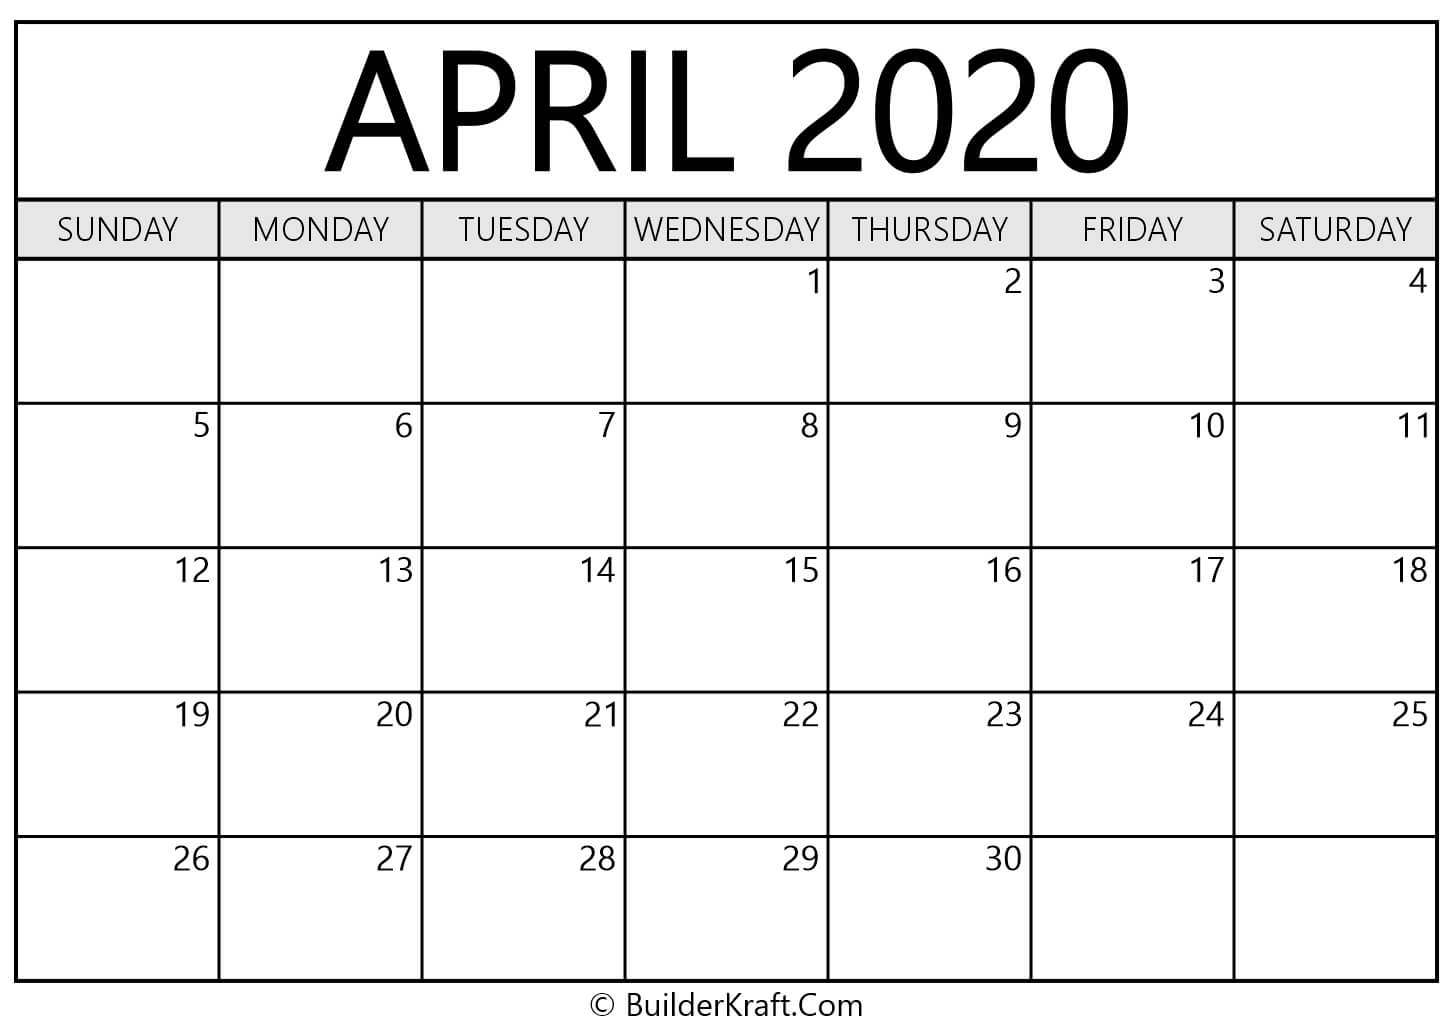 May 2020 Calendar | May Calendar Template 2020 Yearly!!